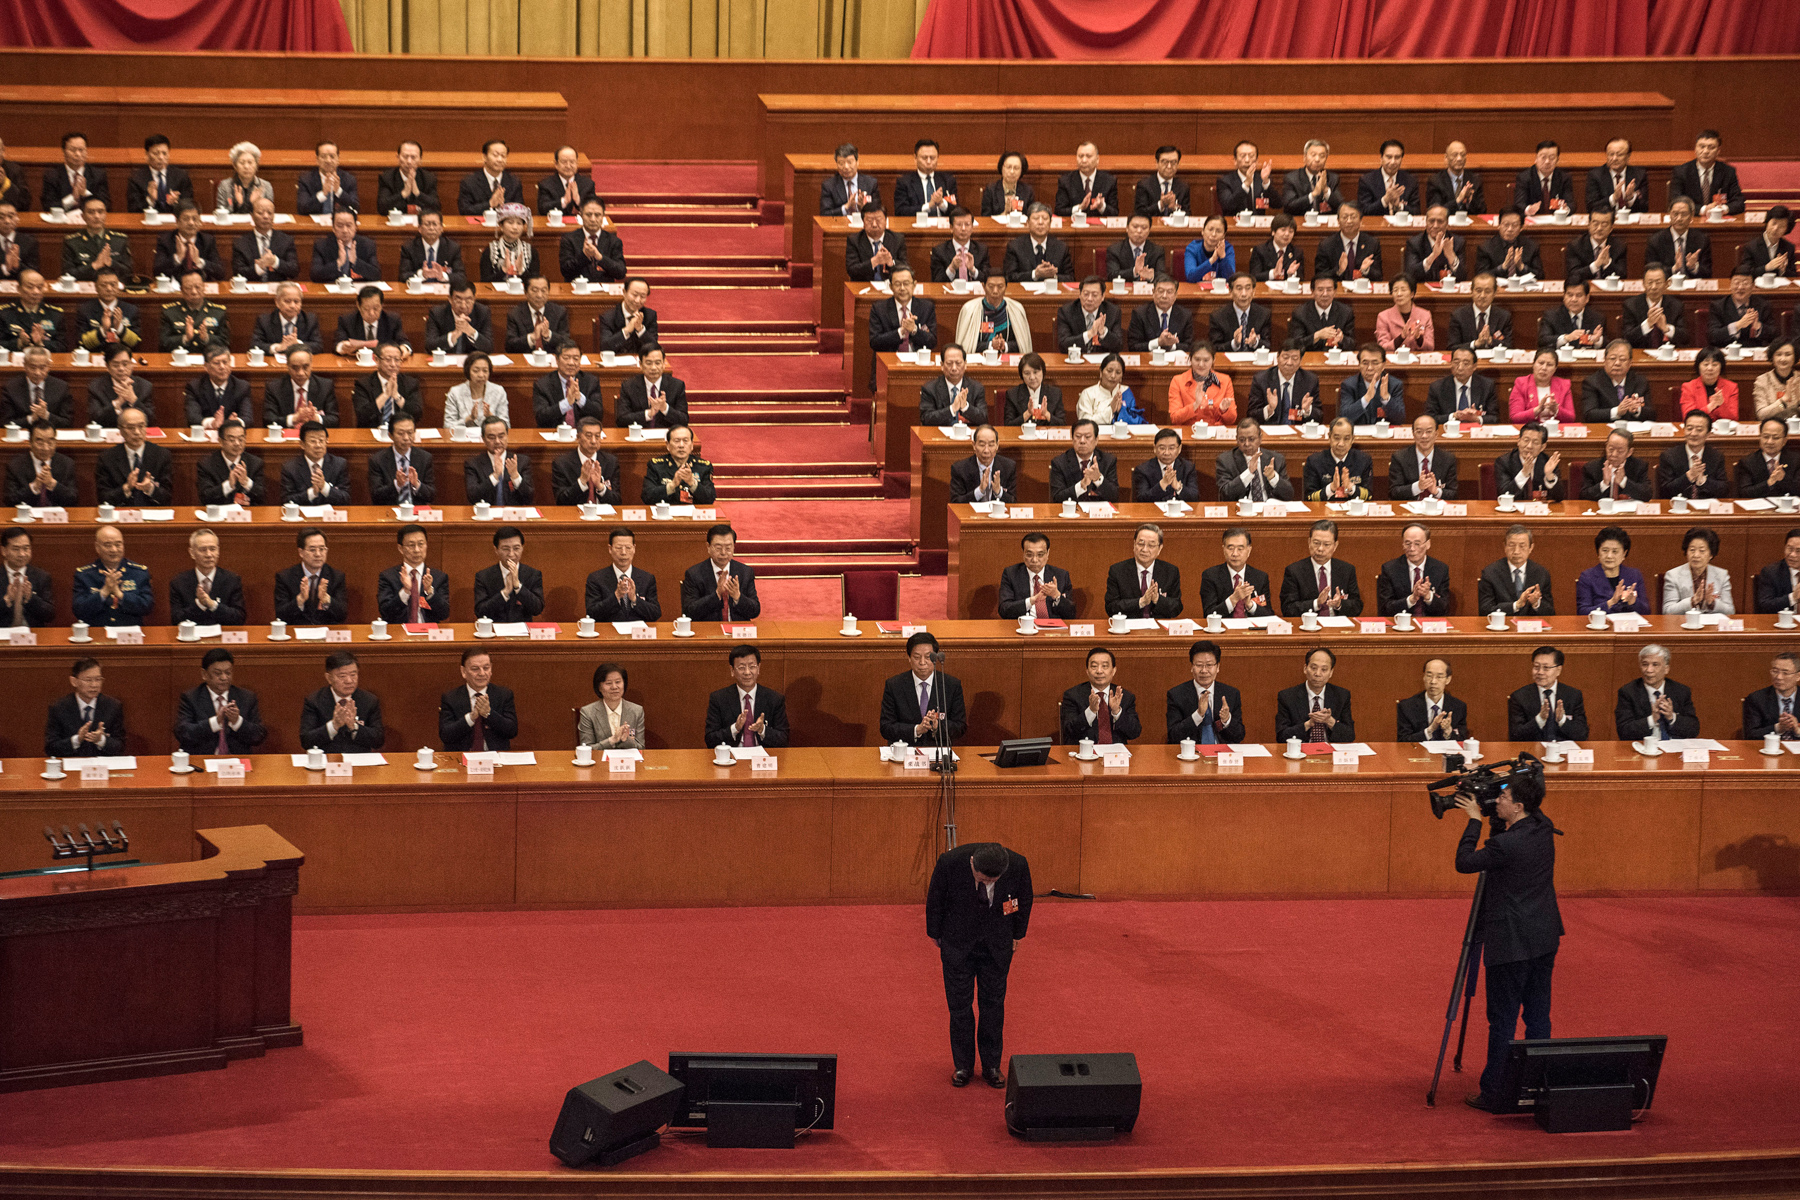 China's President Xi Jinping bows before his speech during the closing session of the National People's Congress at the Great Hall of the People in Beijing, March 20. Legislators passed an amendment to abolish the two-term limit of the presidency, opening the door for Xi, who is also General Secretary of China's Communist Party, to rule in perpetuity. (Kevin Frayer/Getty Images)